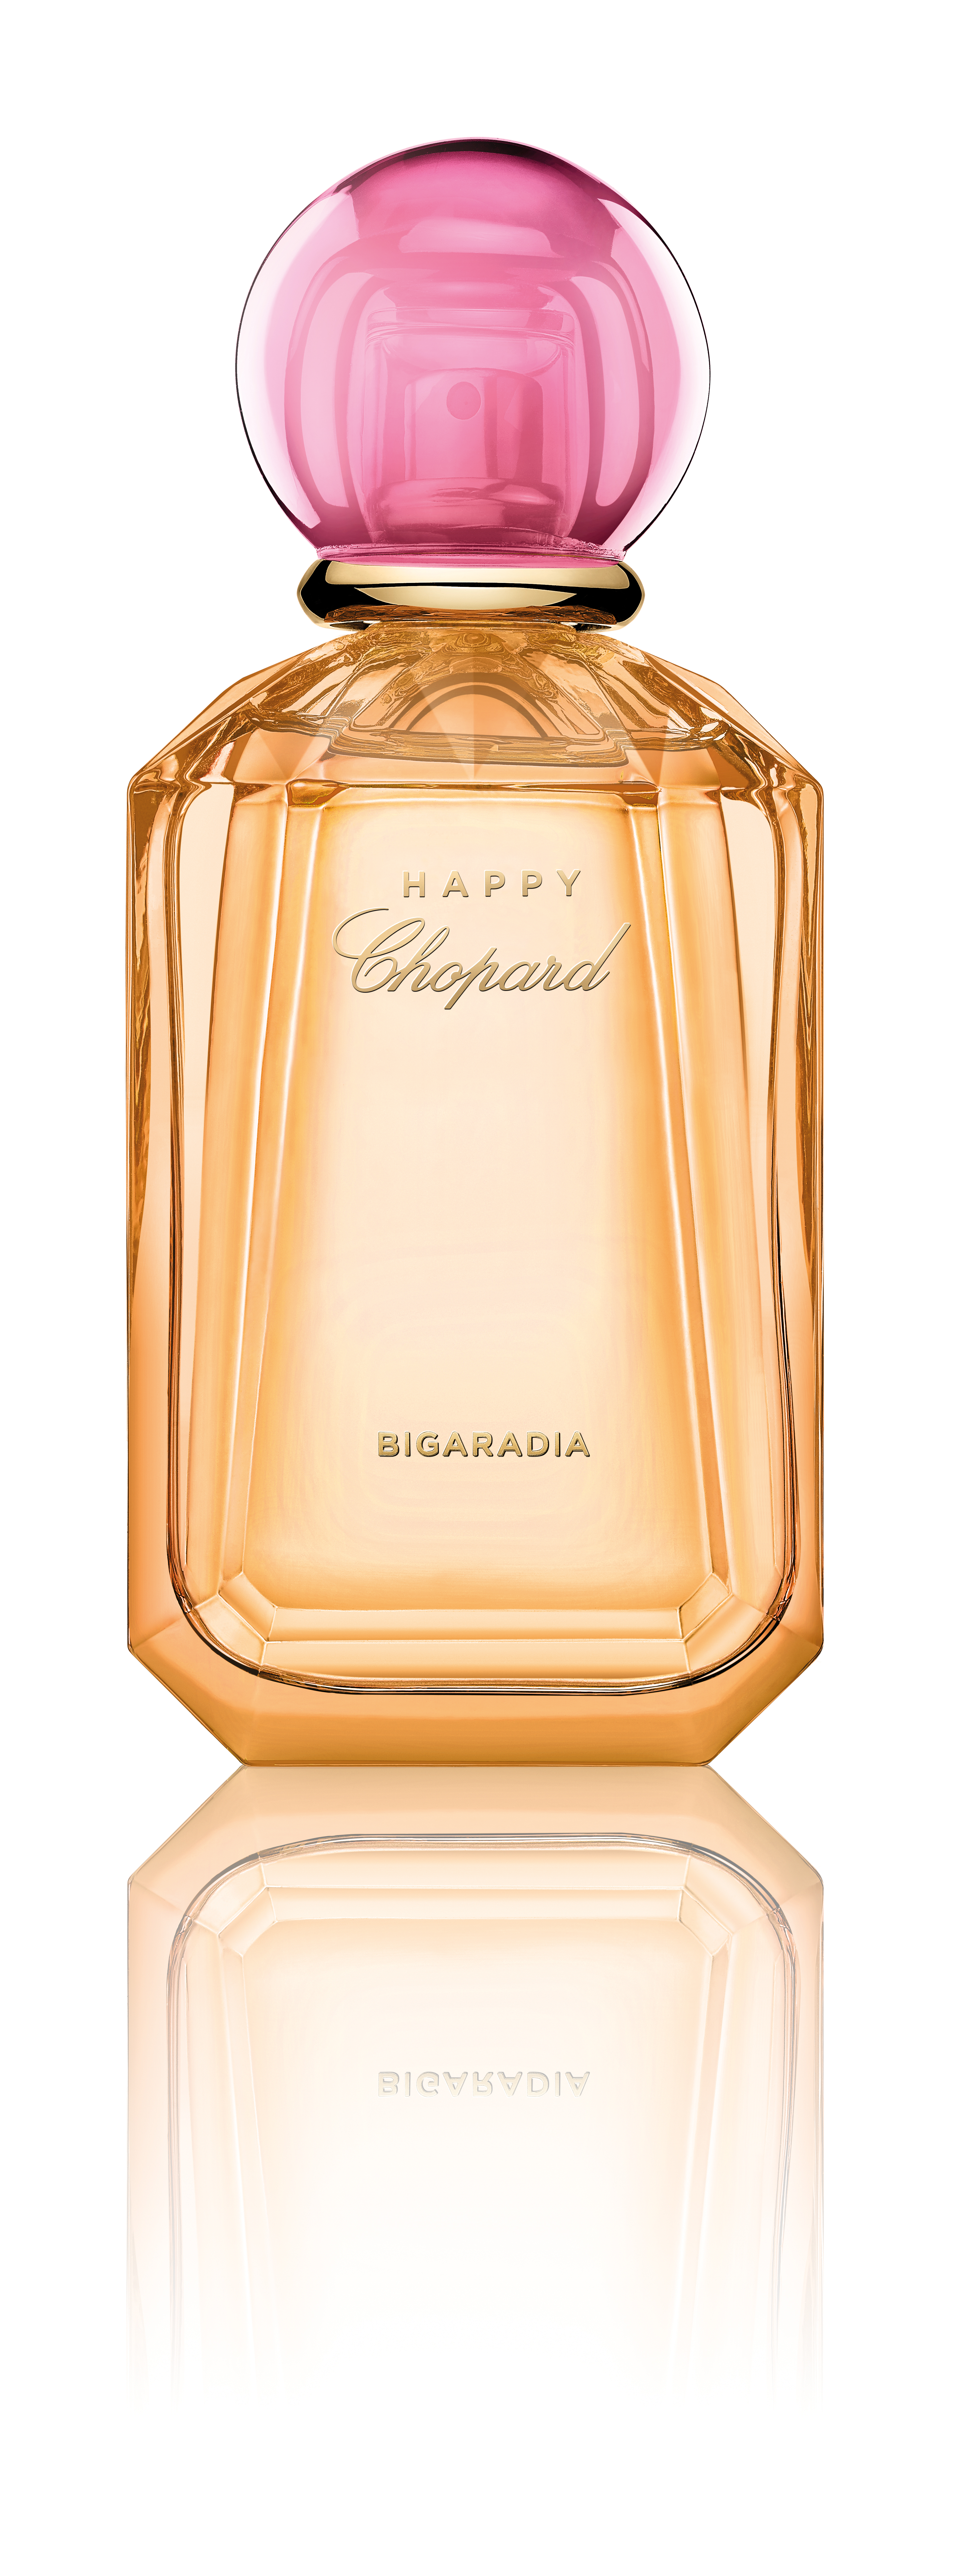 ed666bee6 Jewelry brand Chopard revealed the third fragrance in its Happy Chopard  collection, which is slated to hit shelves next April.